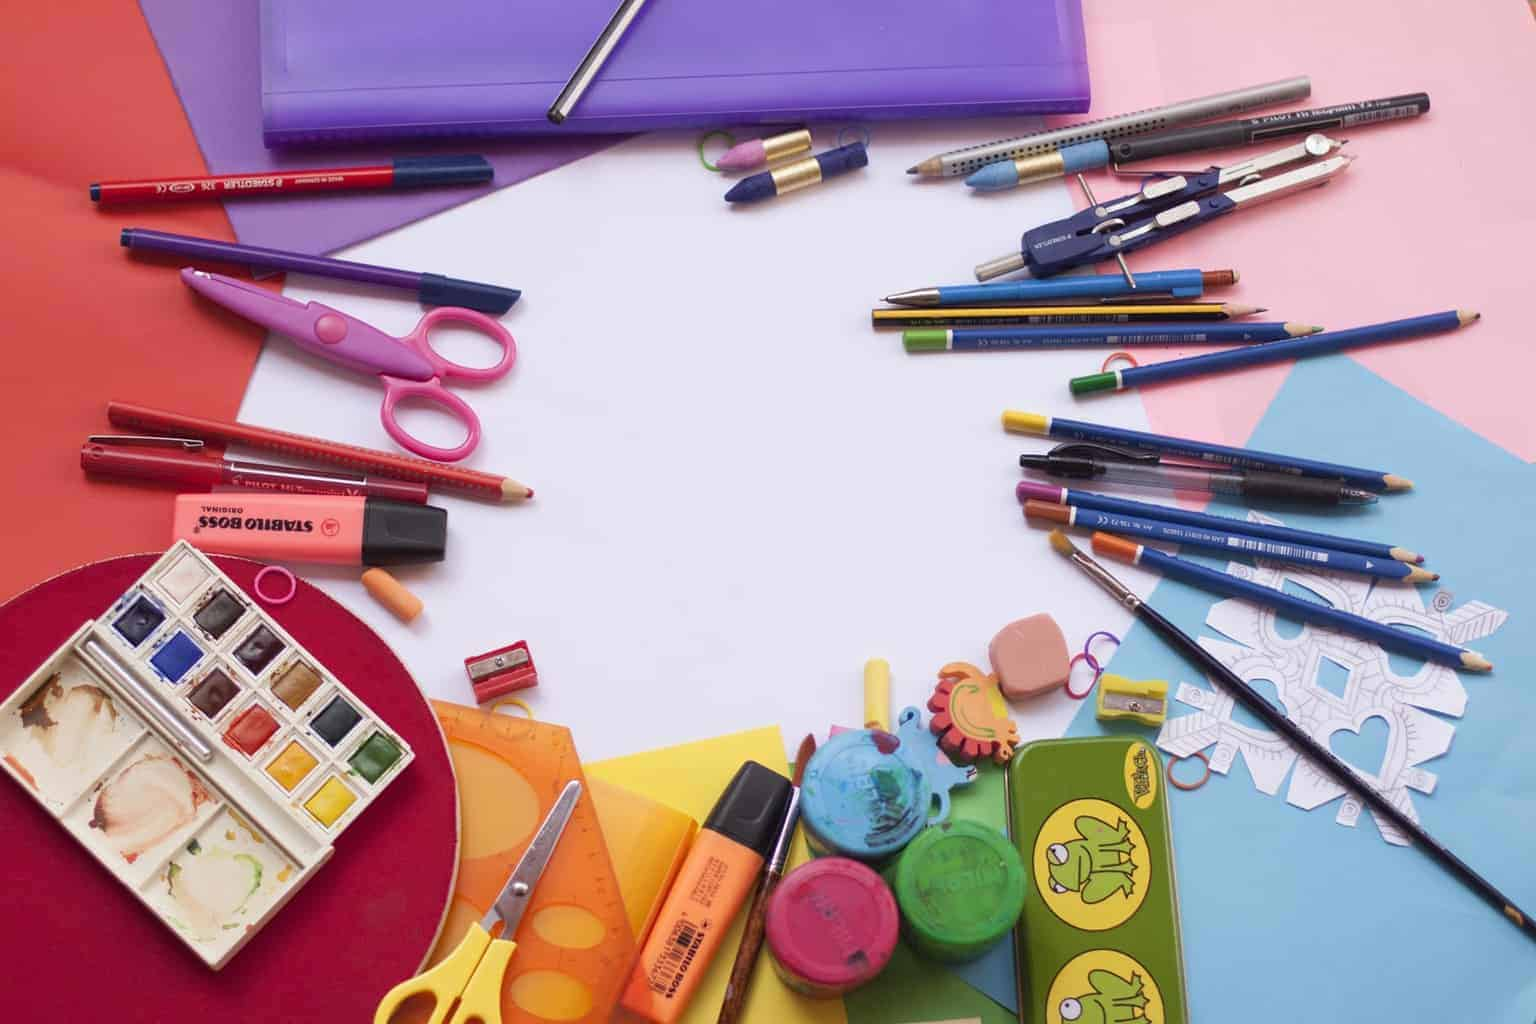 Allowing Your Kids to Have Creative Outlets No Matter the Mess 1